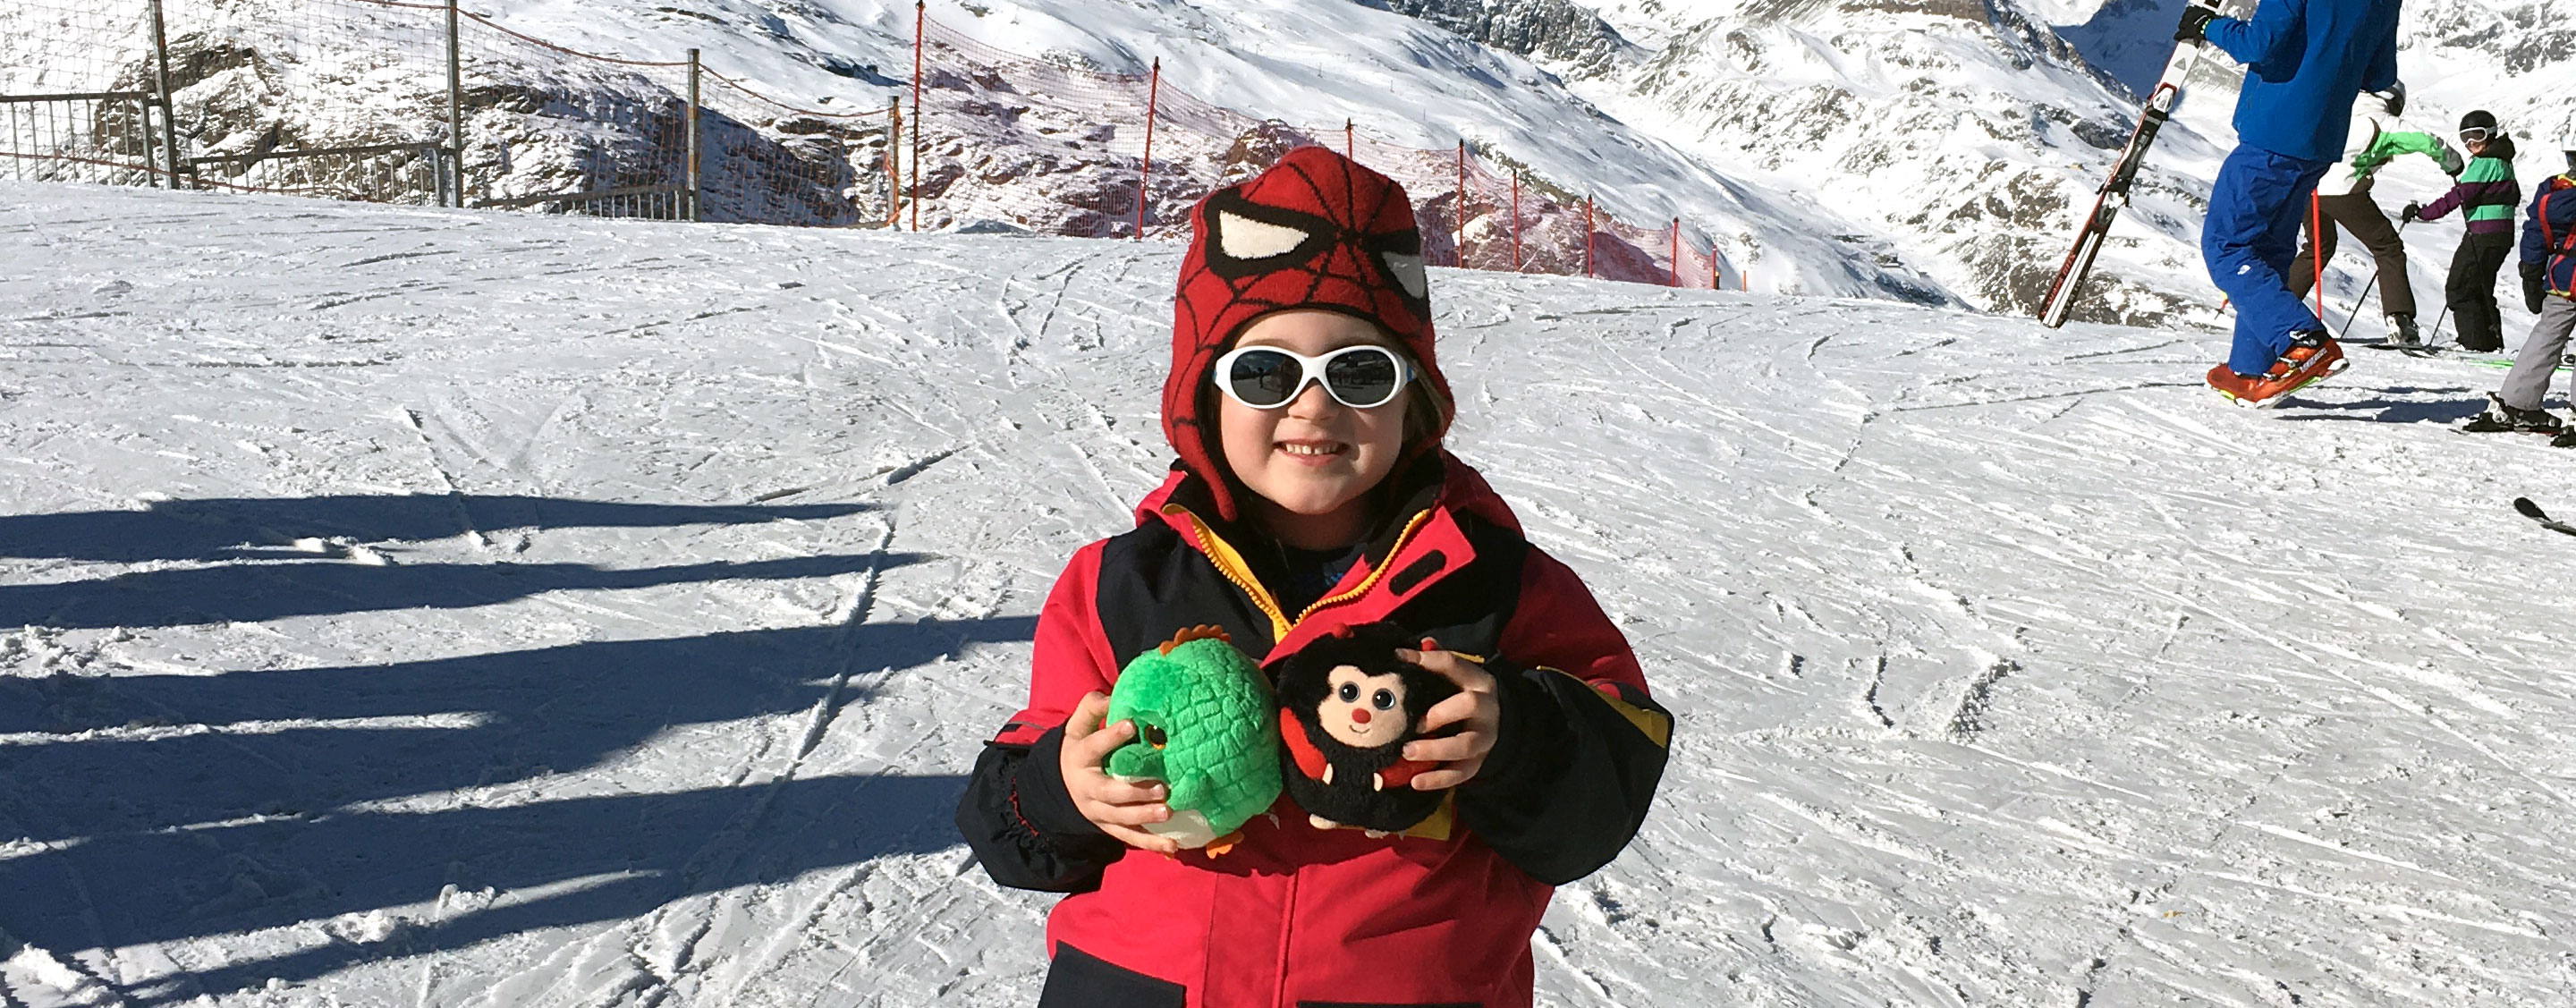 on the mountain with cuddly toys